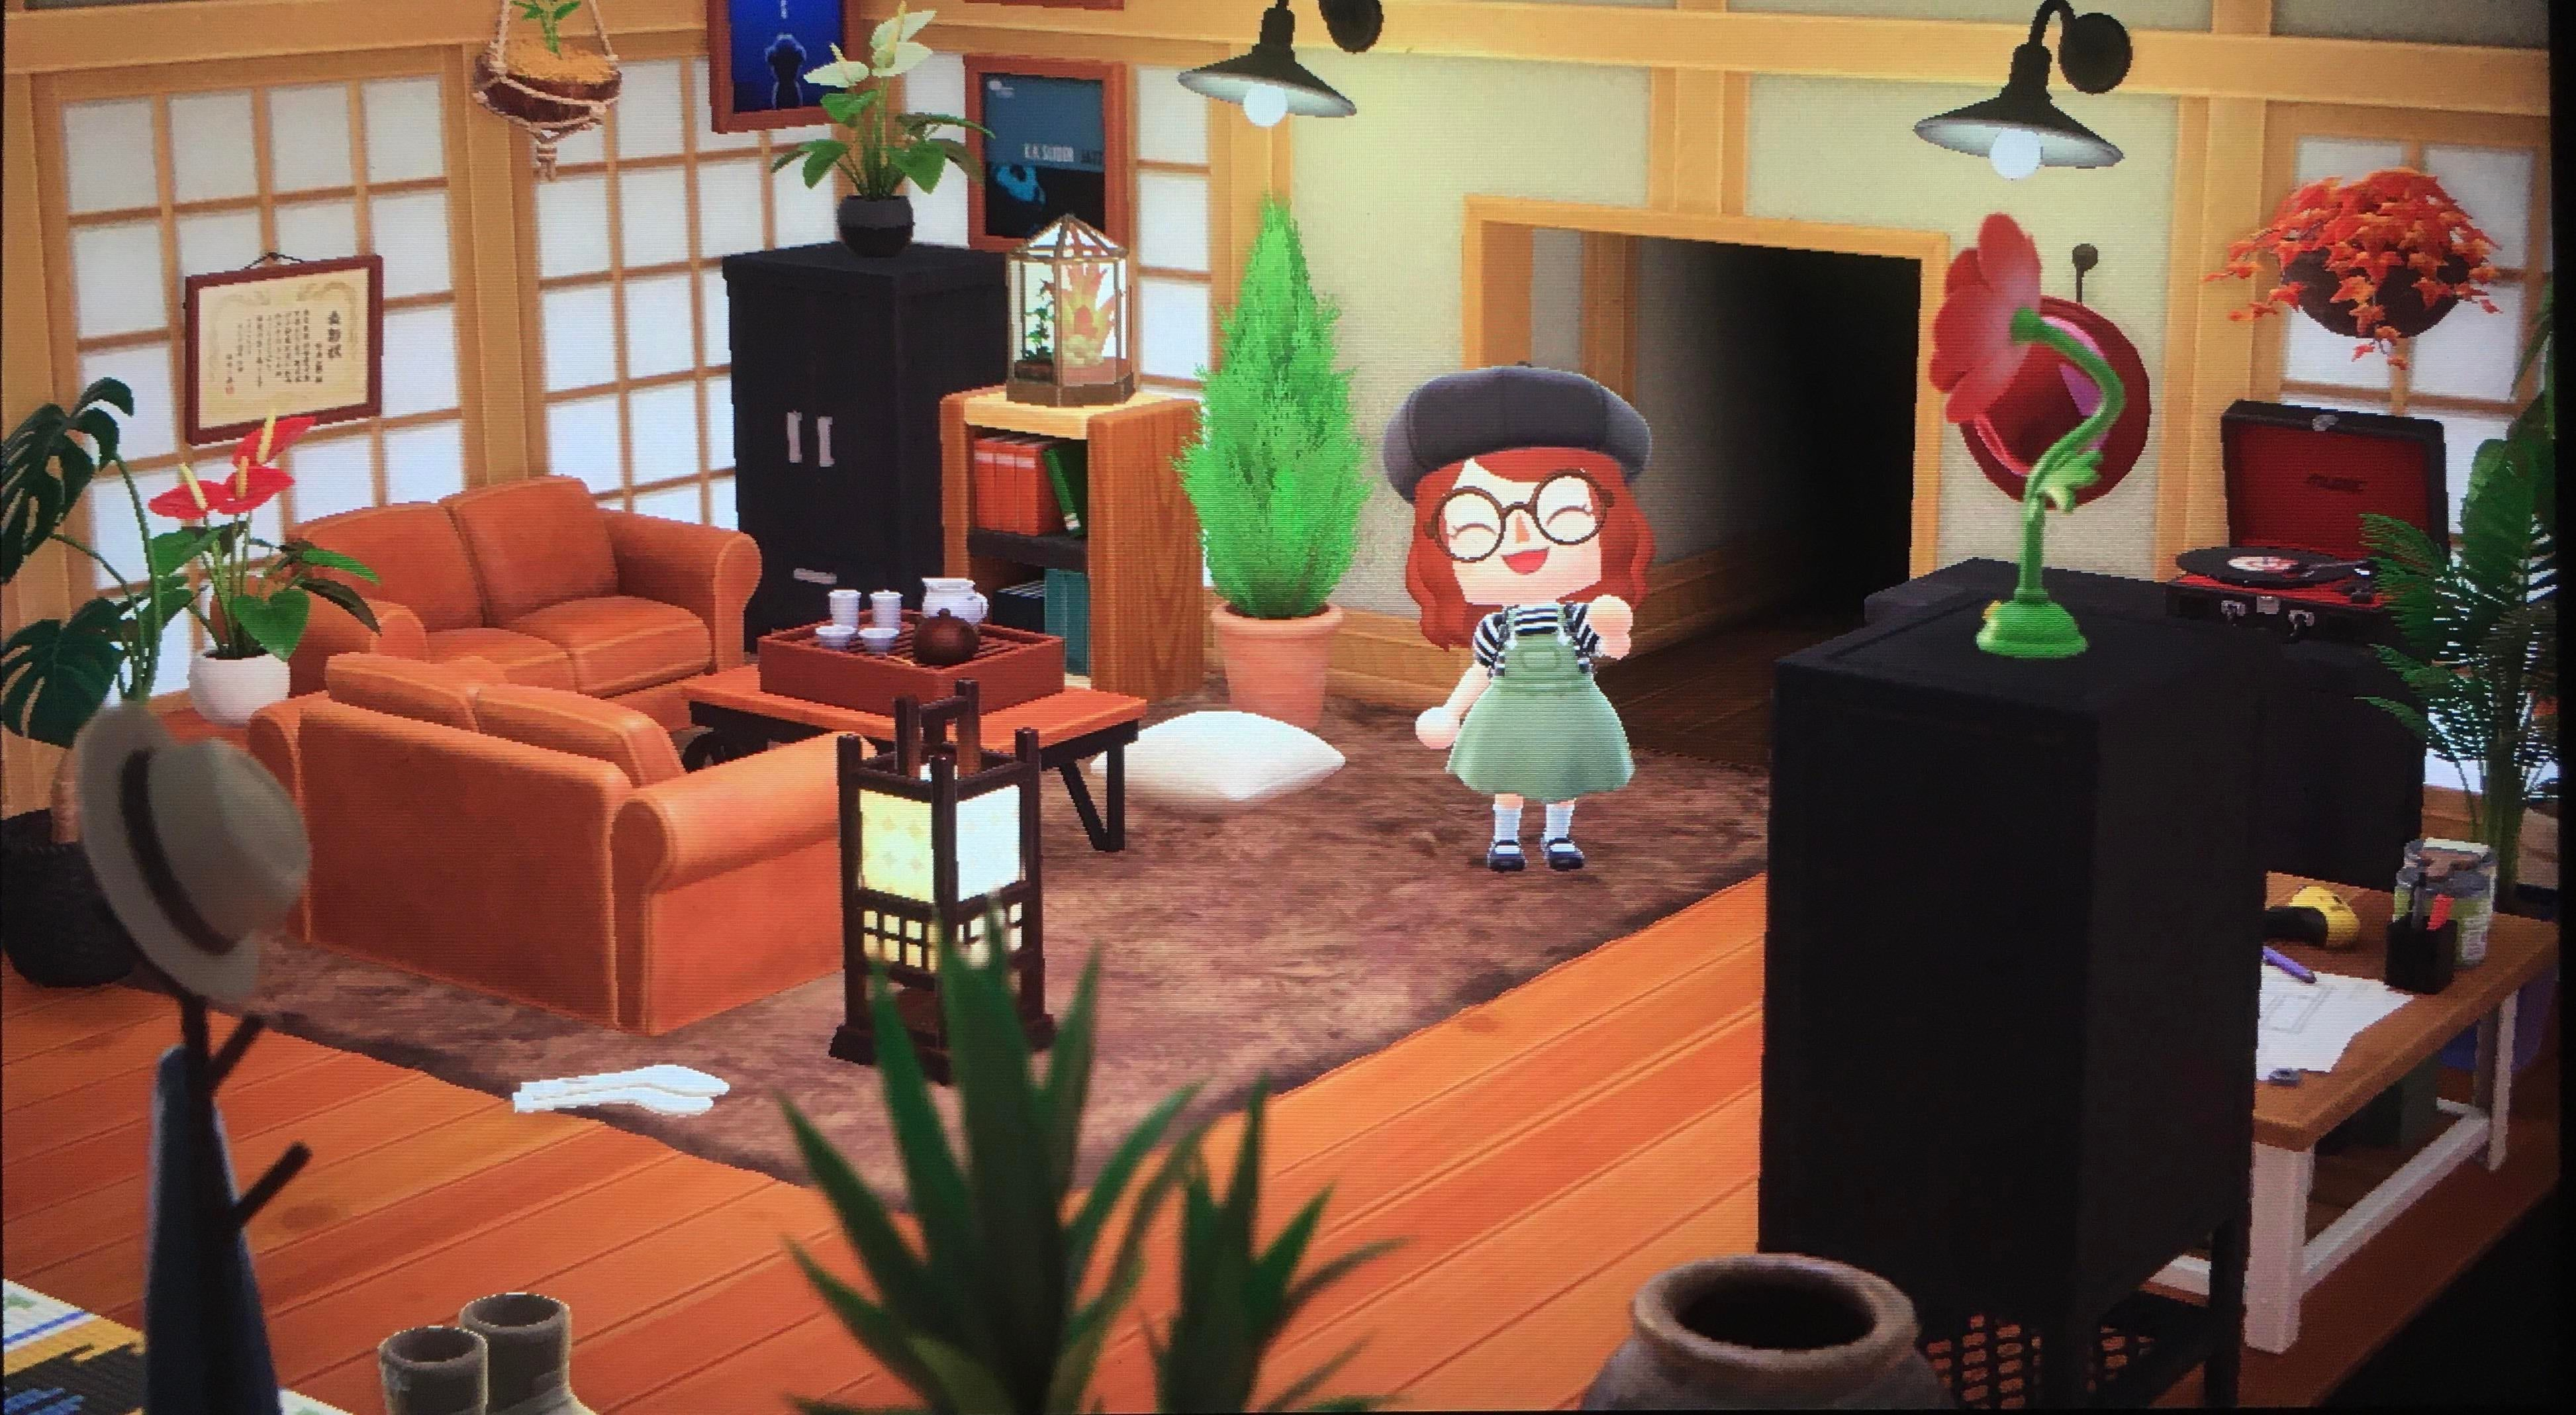 Cozy Living Room in 2020 Animal crossing, Dress up games